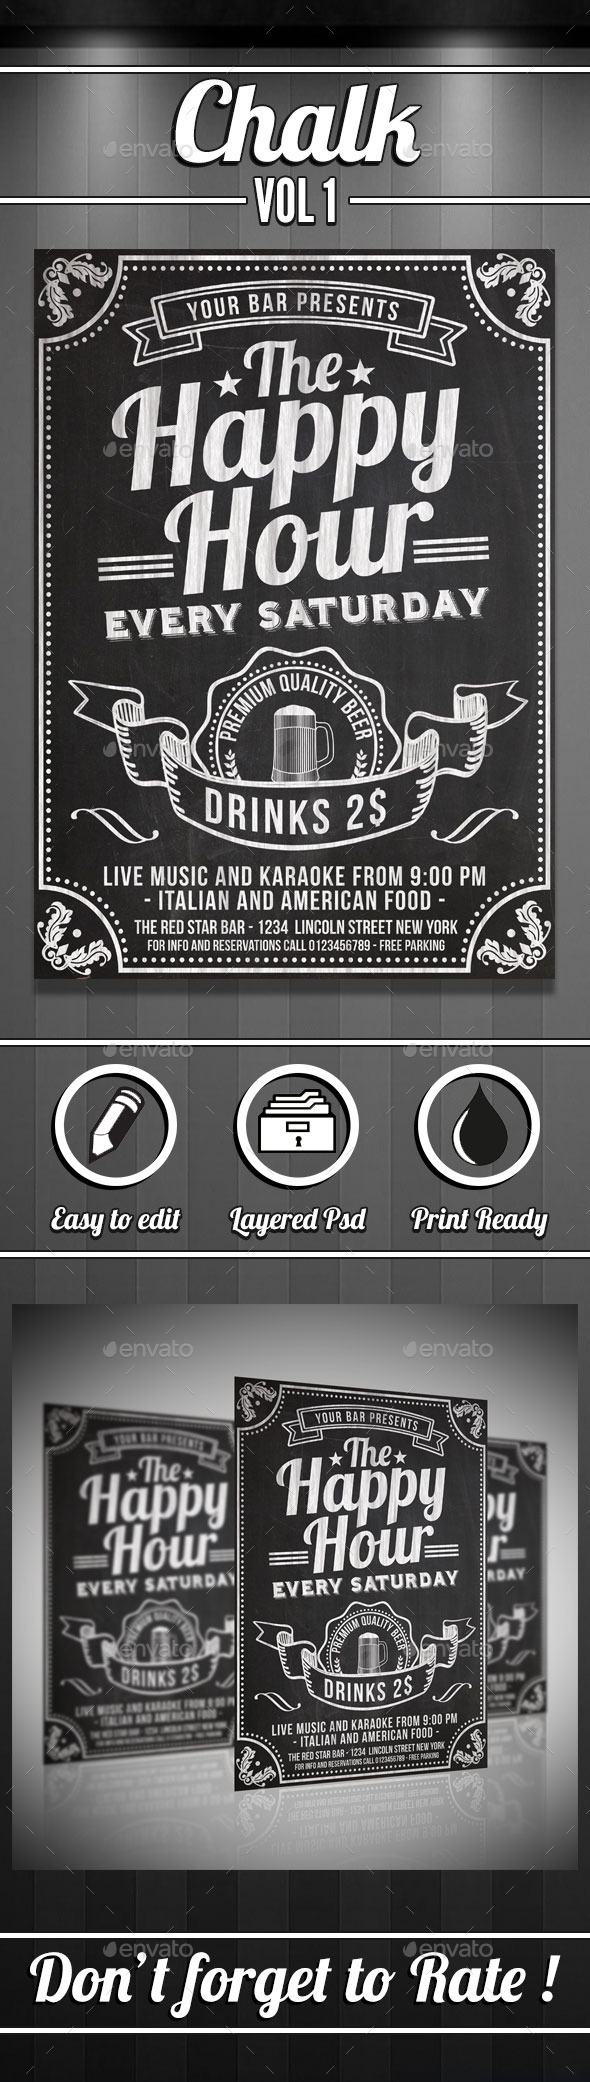 happy hour flyer template word stock photos graphics. Black Bedroom Furniture Sets. Home Design Ideas